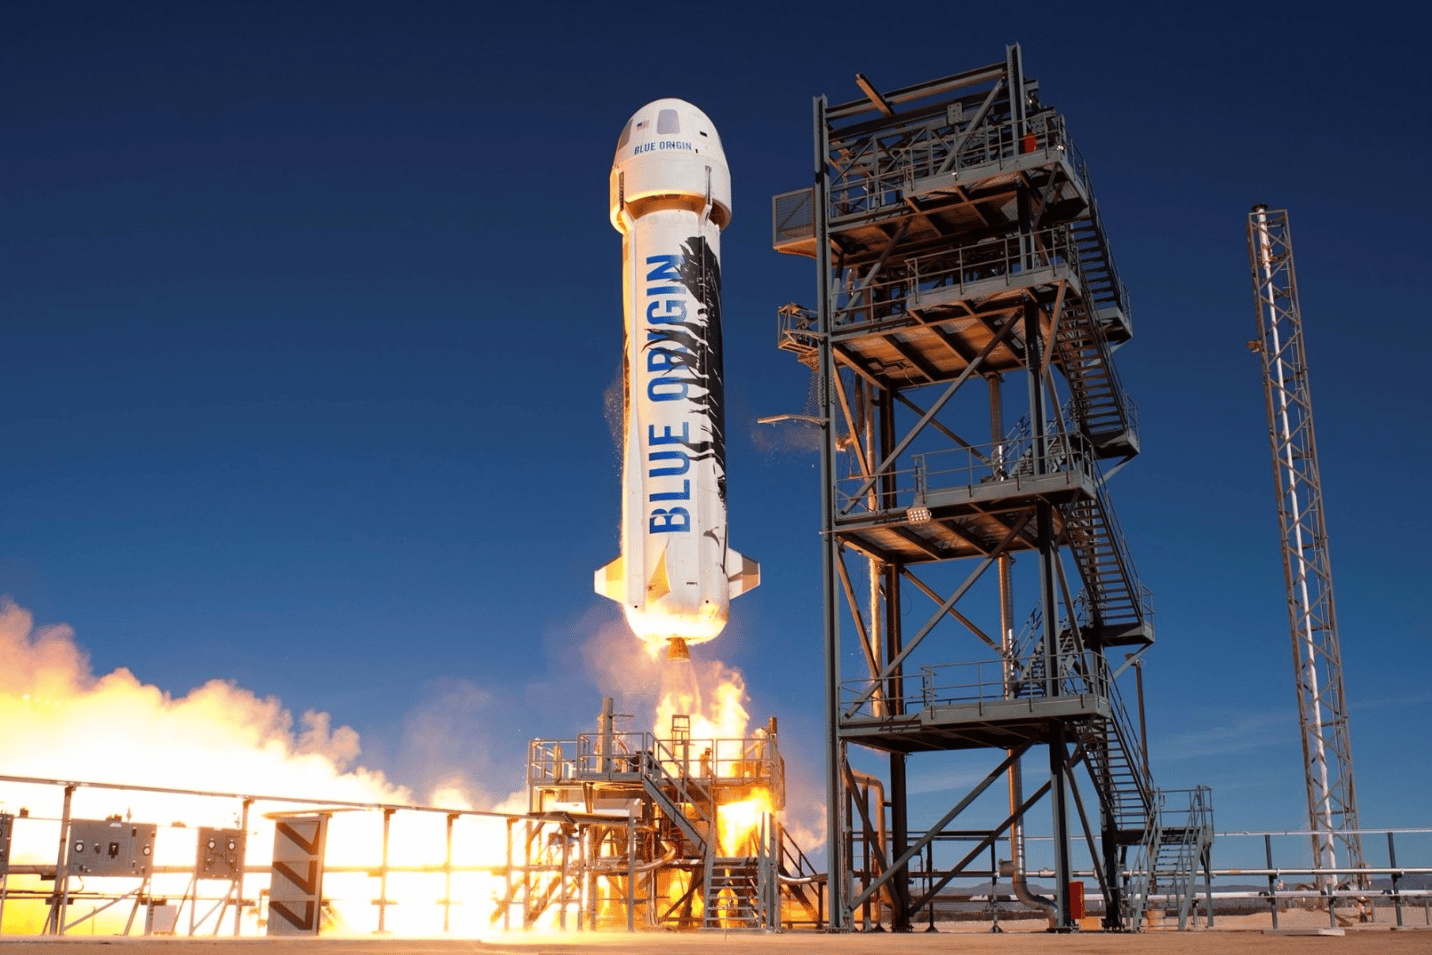 Someone has bid $28 million to be the first paying customer aboard Blue Origin's first passenger flight next month